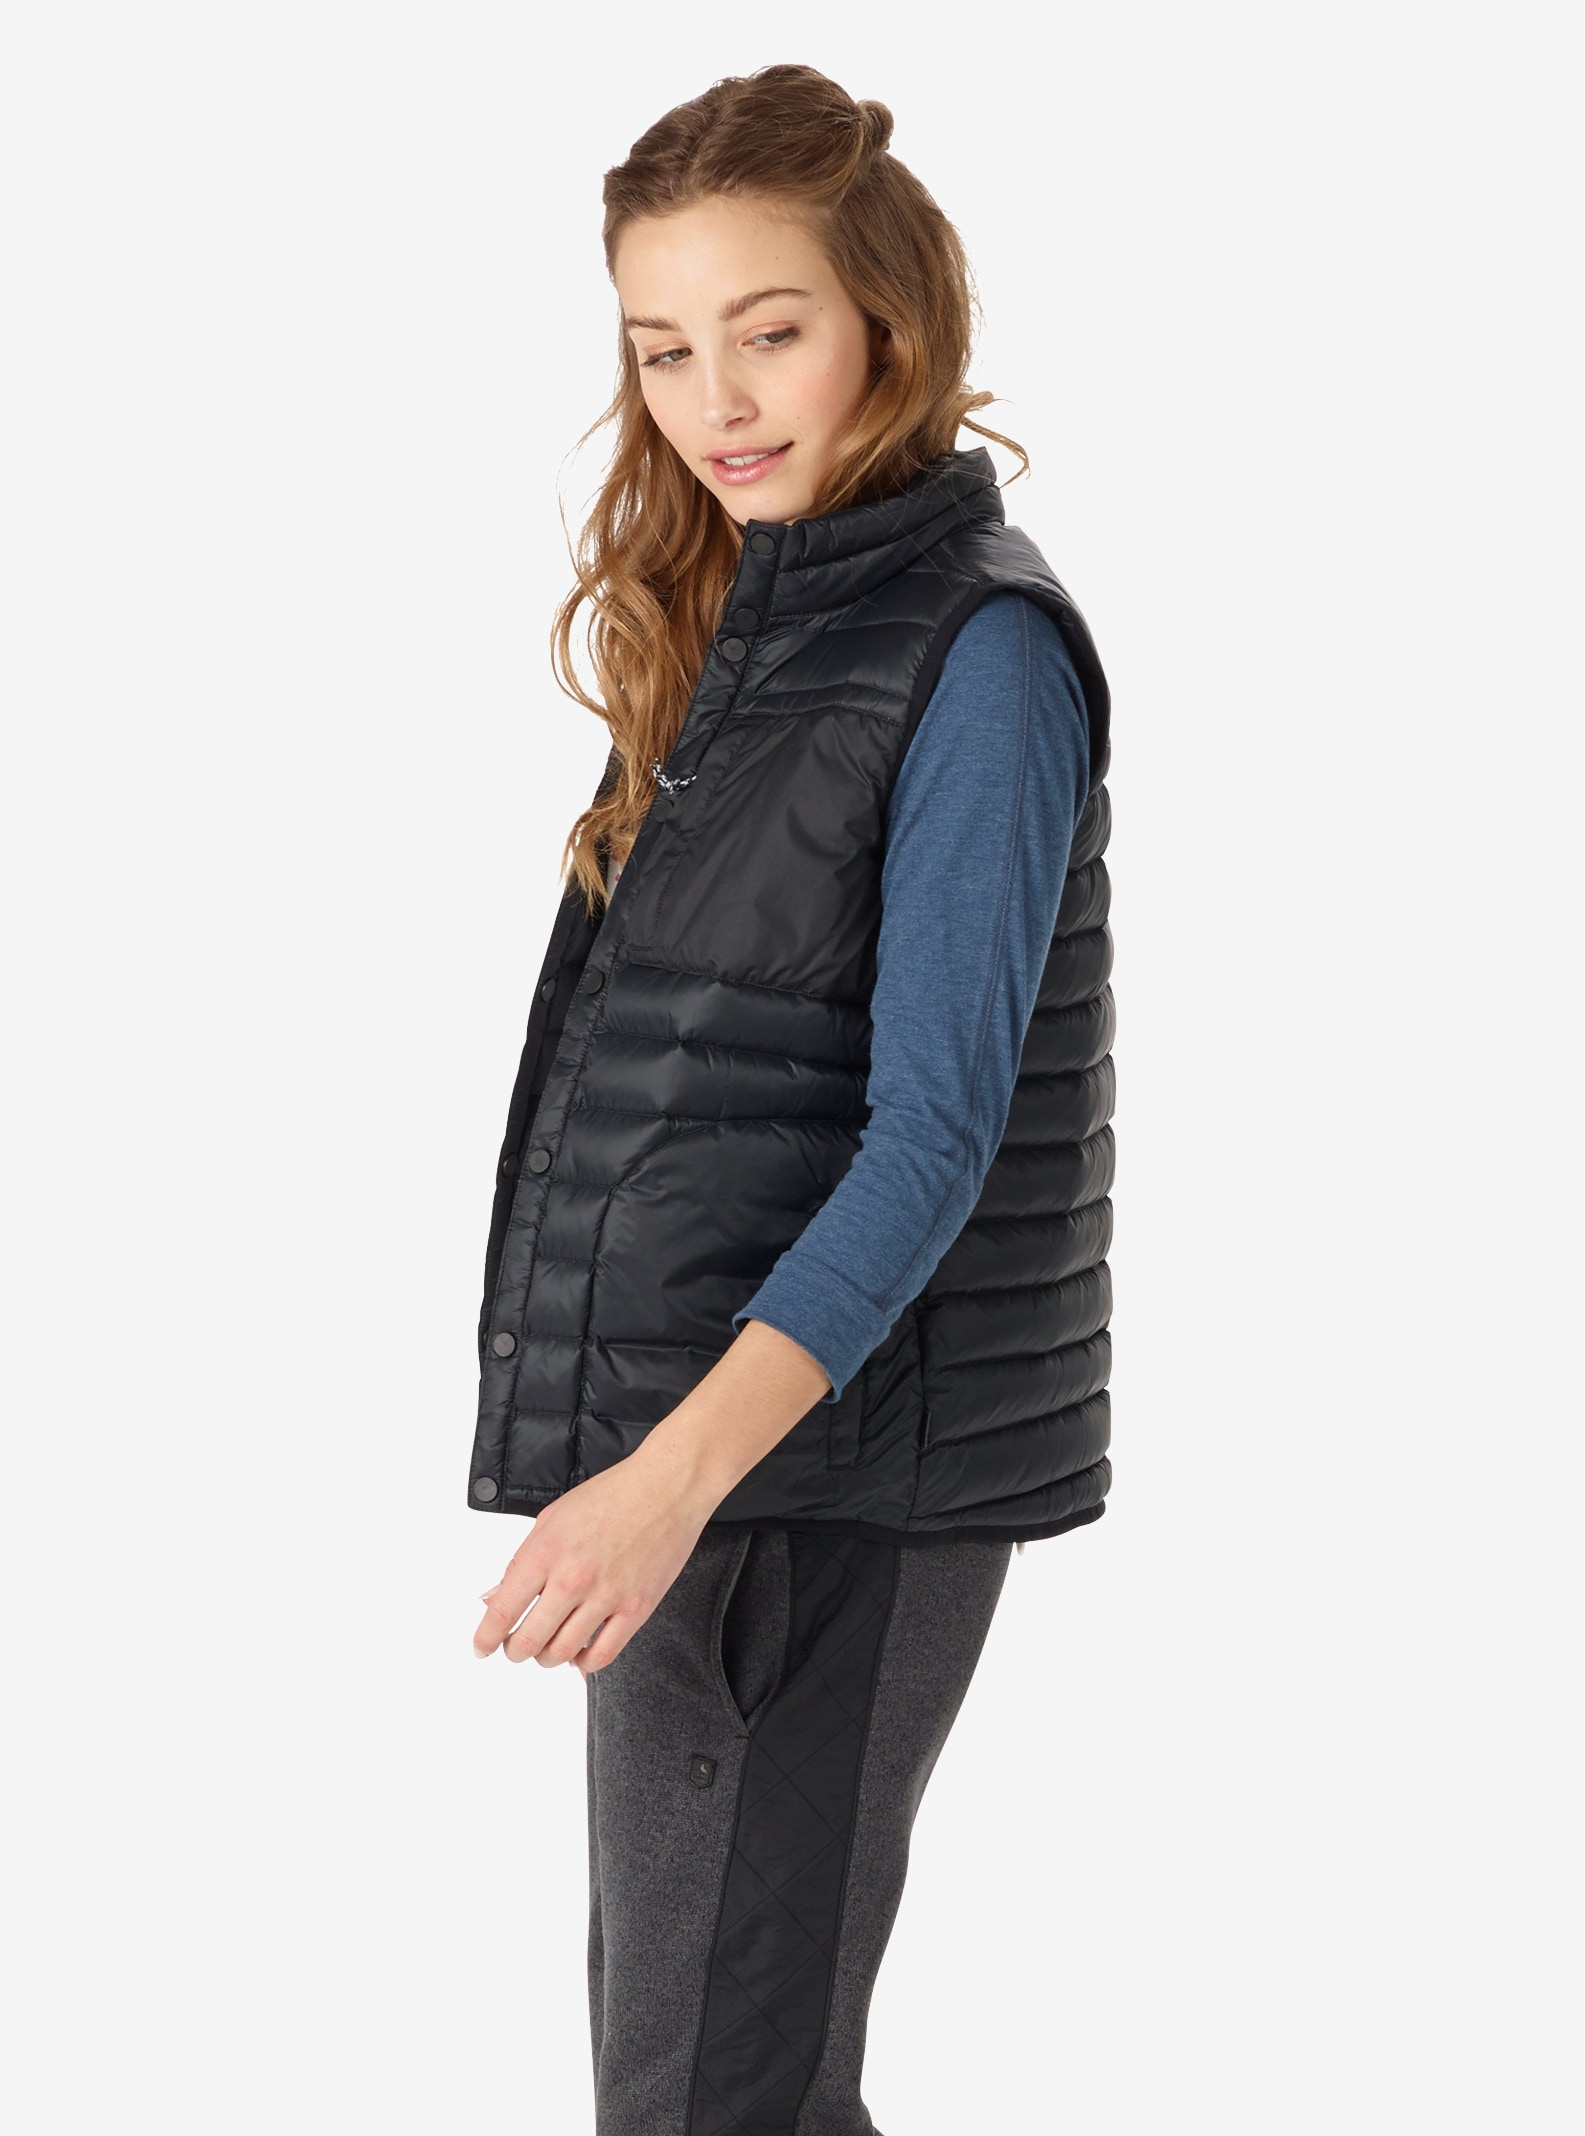 Women's Burton Evergreen Down Vest Insulator shown in True Black